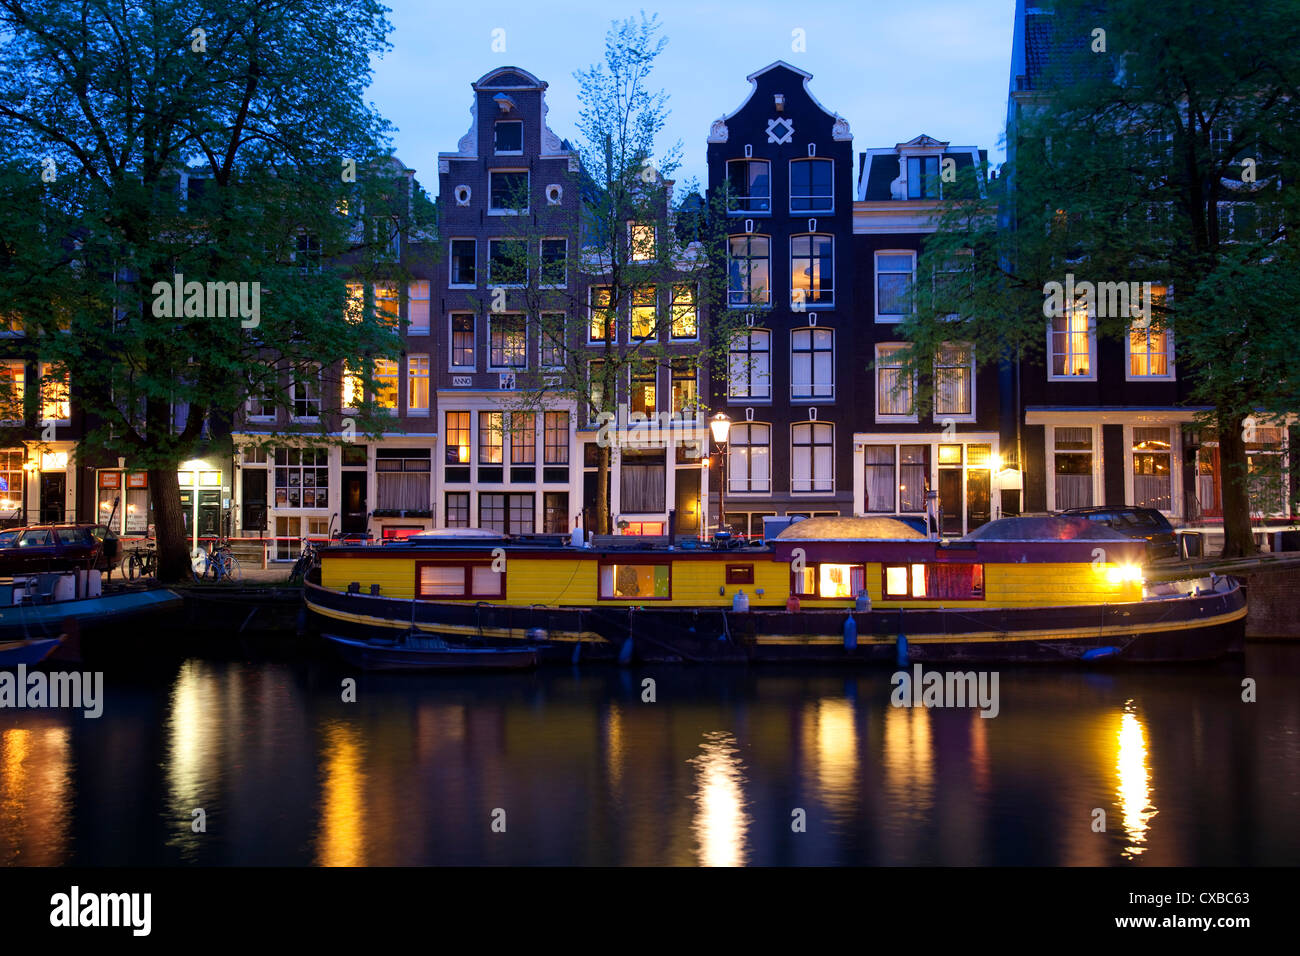 Bateau Canal et l'architecture, Amsterdam, Pays-Bas, Europe Photo Stock